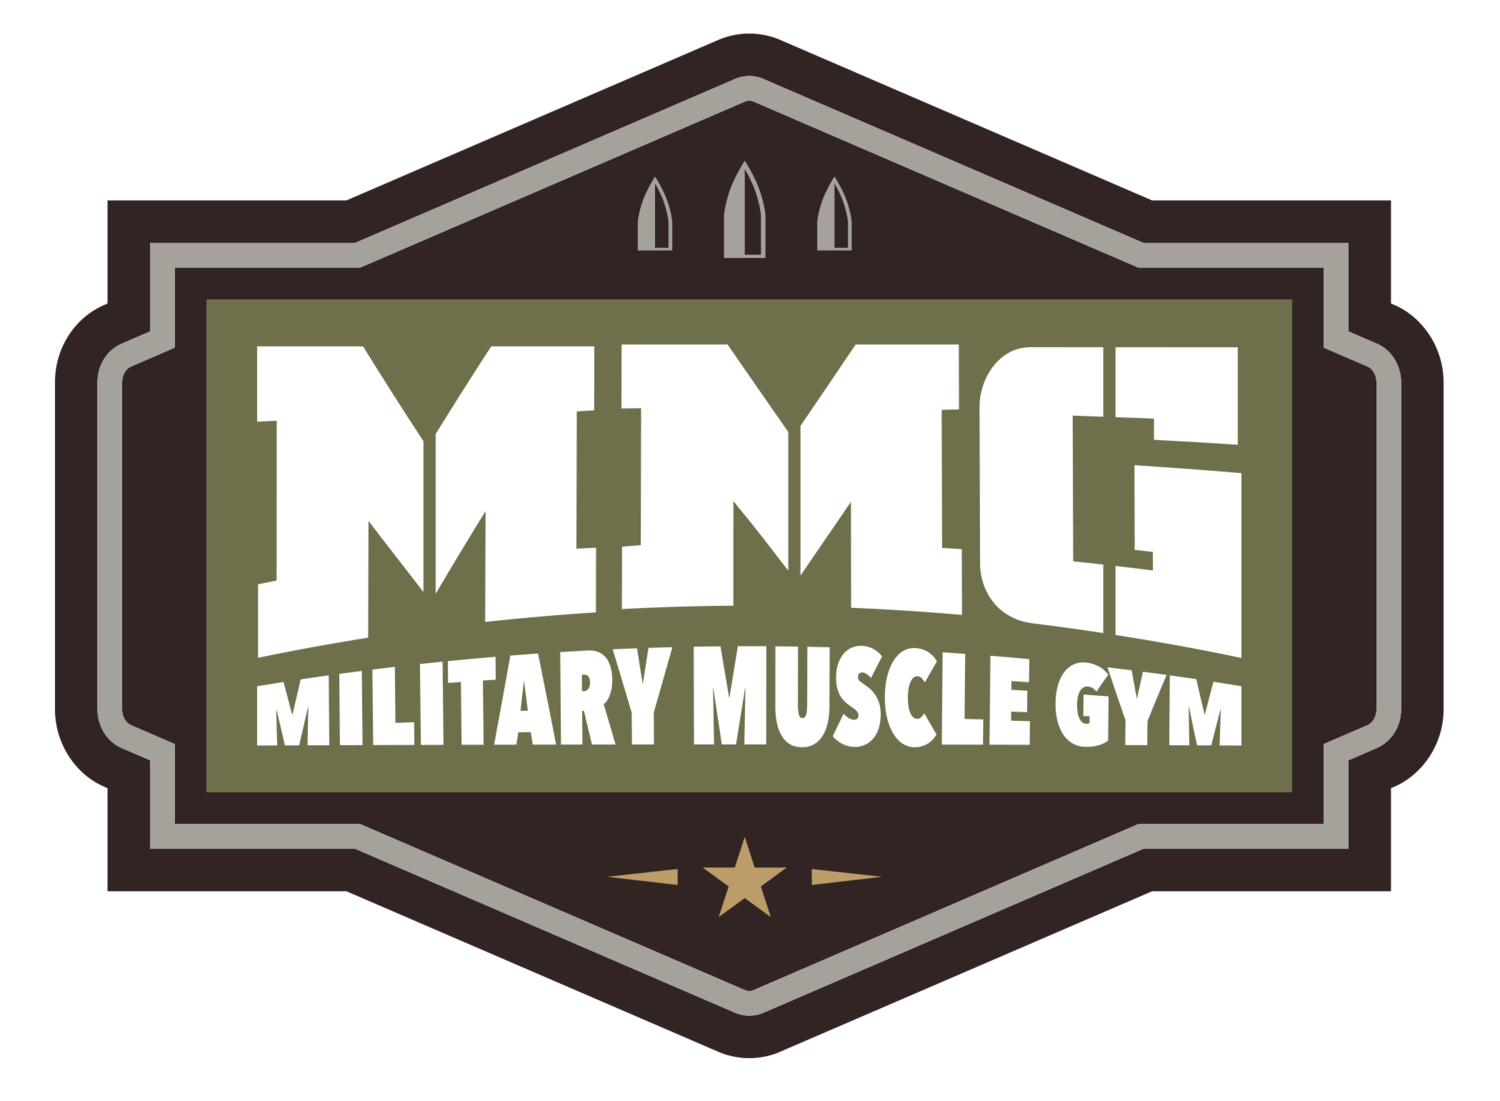 Military Muscle Gym